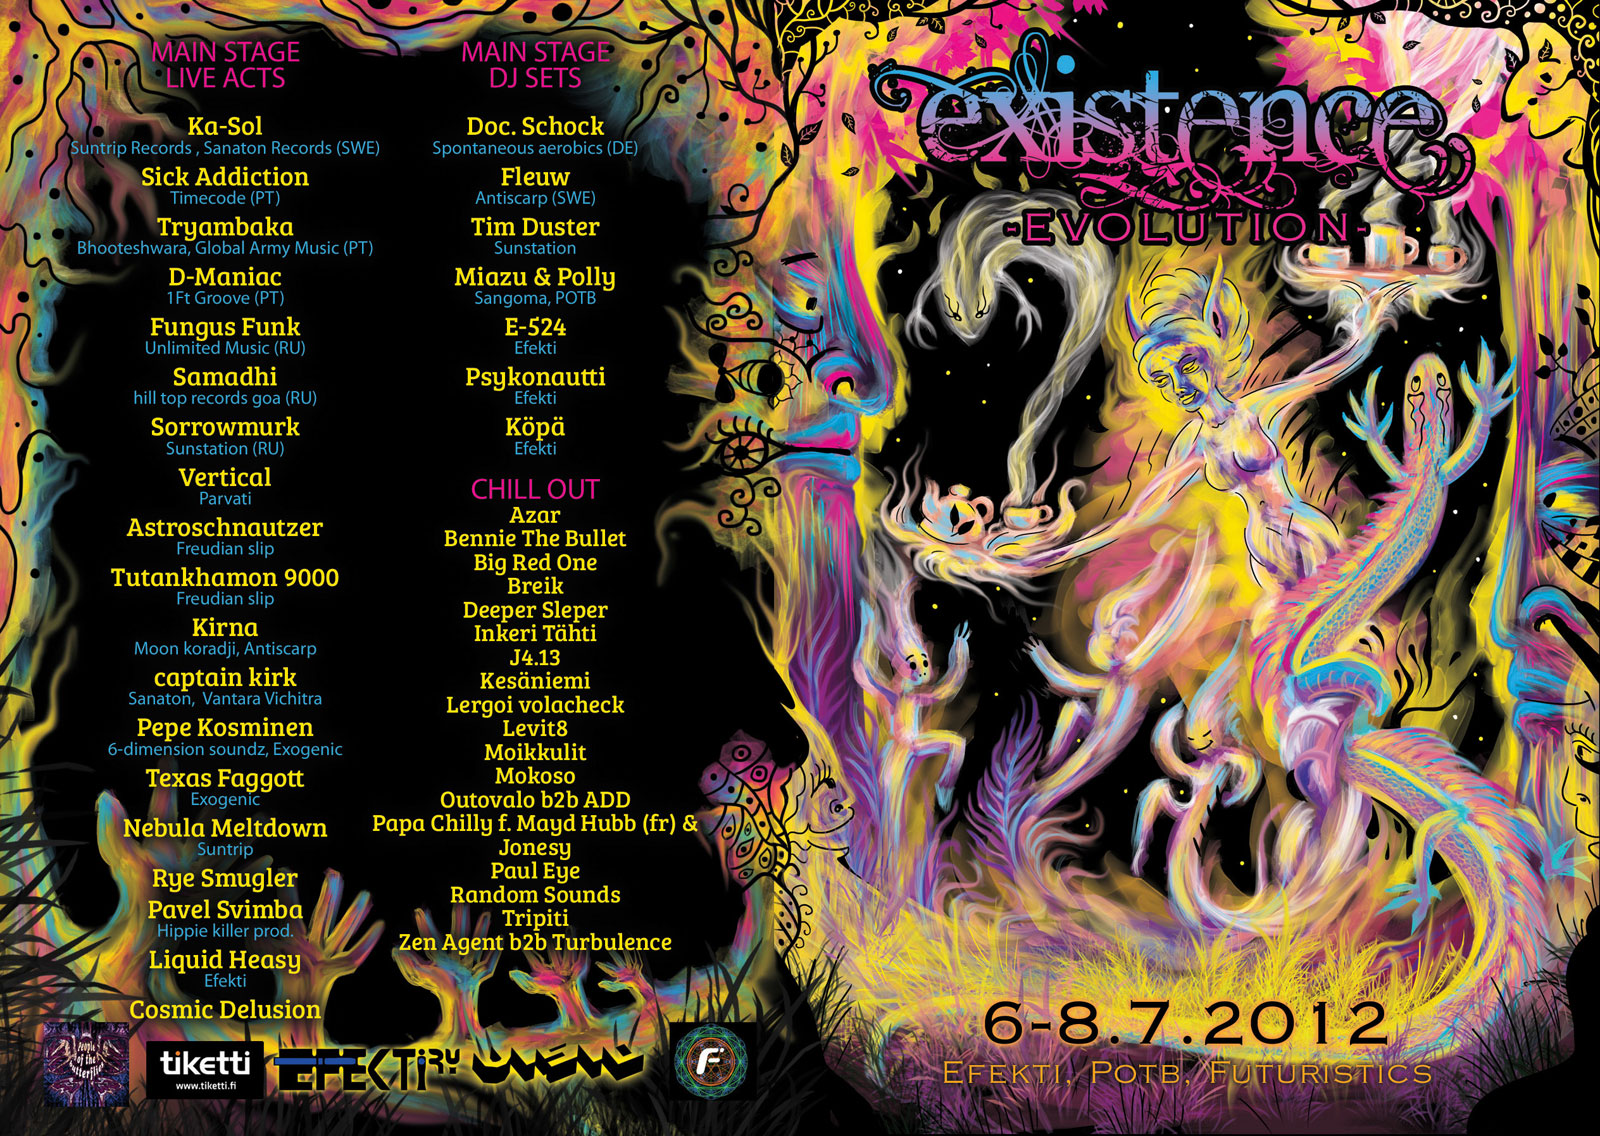 Existence festival 2012 psychedelic trance flyer design by Andrei Verner